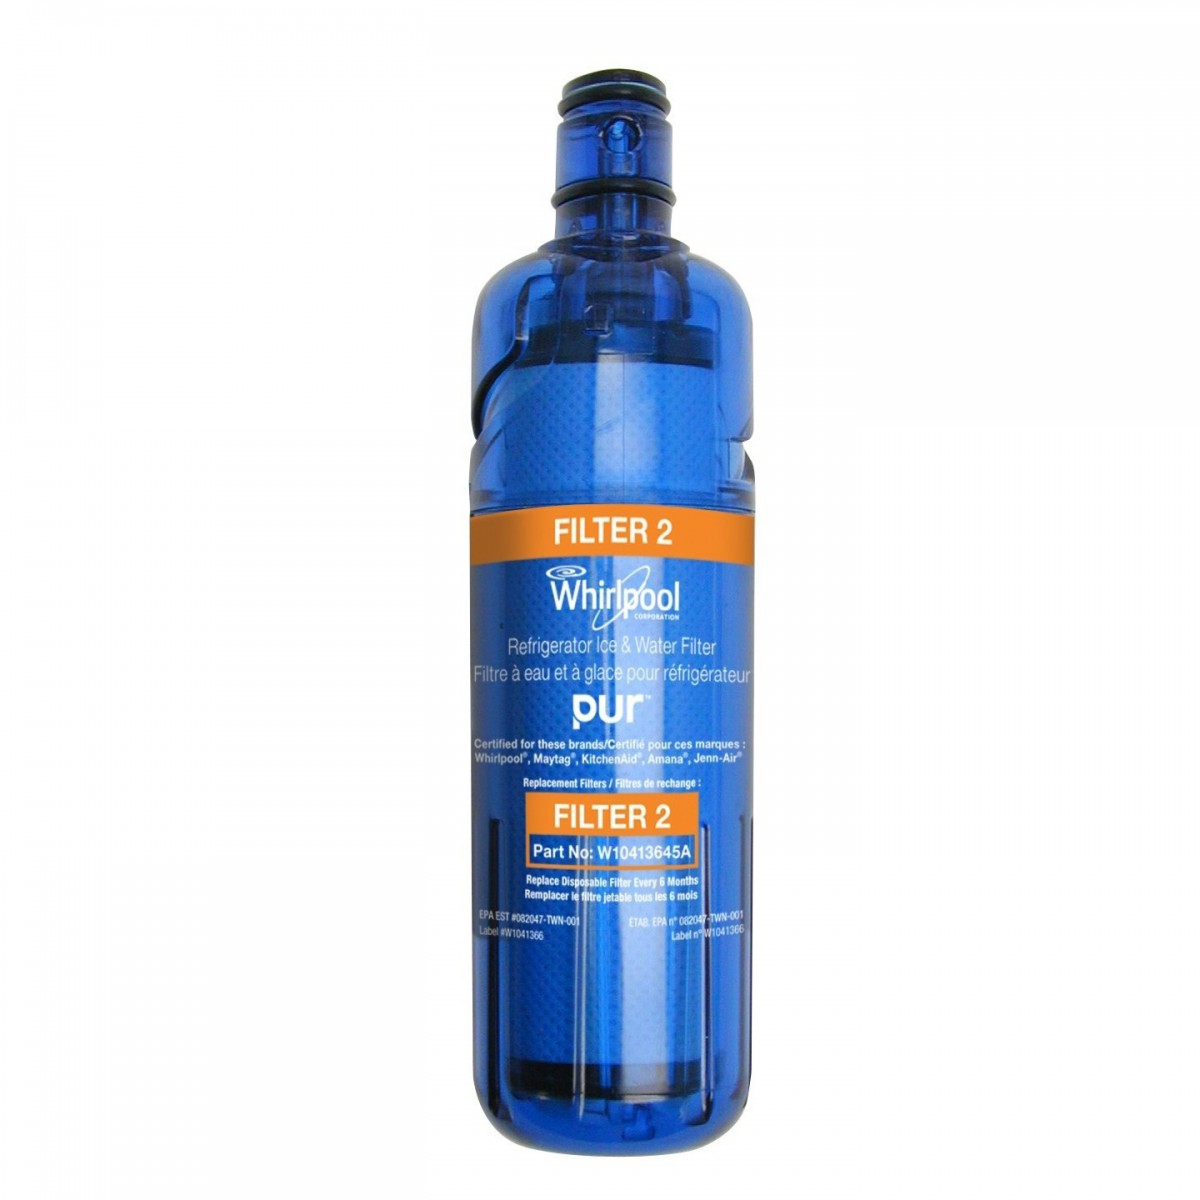 W10413645a Whirlpool Replacement Refrigerator Filter